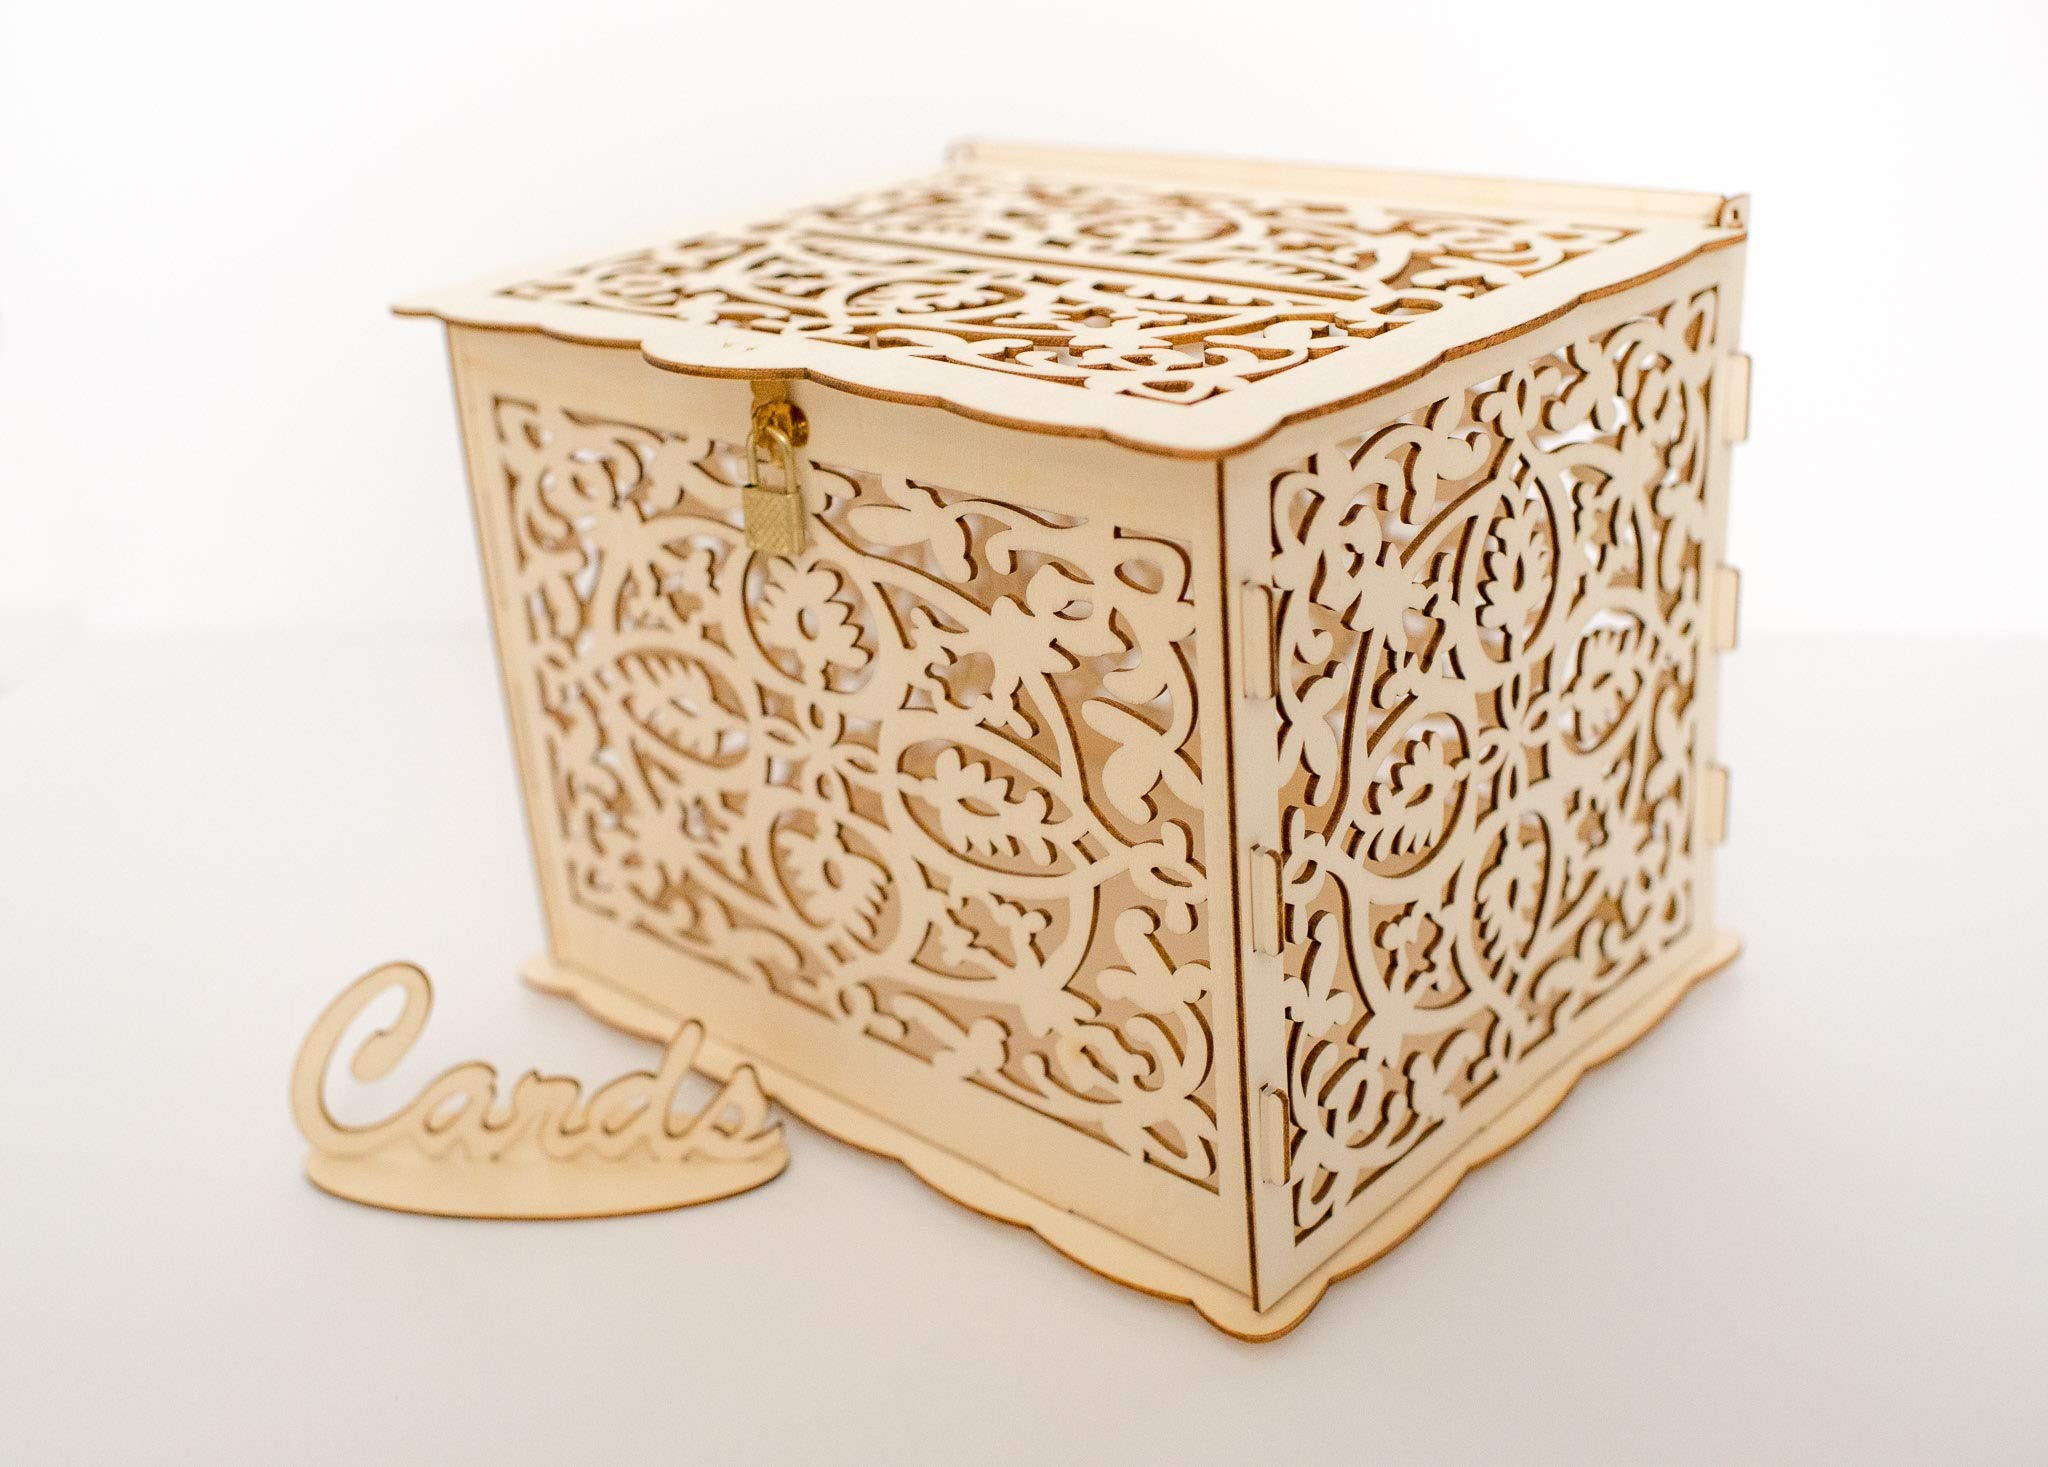 Premium Card Box Holder Baby Shower Wedding Birthday Party Decorative Wooden Boxes Wood Locking Card Box Rustic Storage Decoration With Lock Anniversary Decorations Card Holder Lock Box Buy Online In